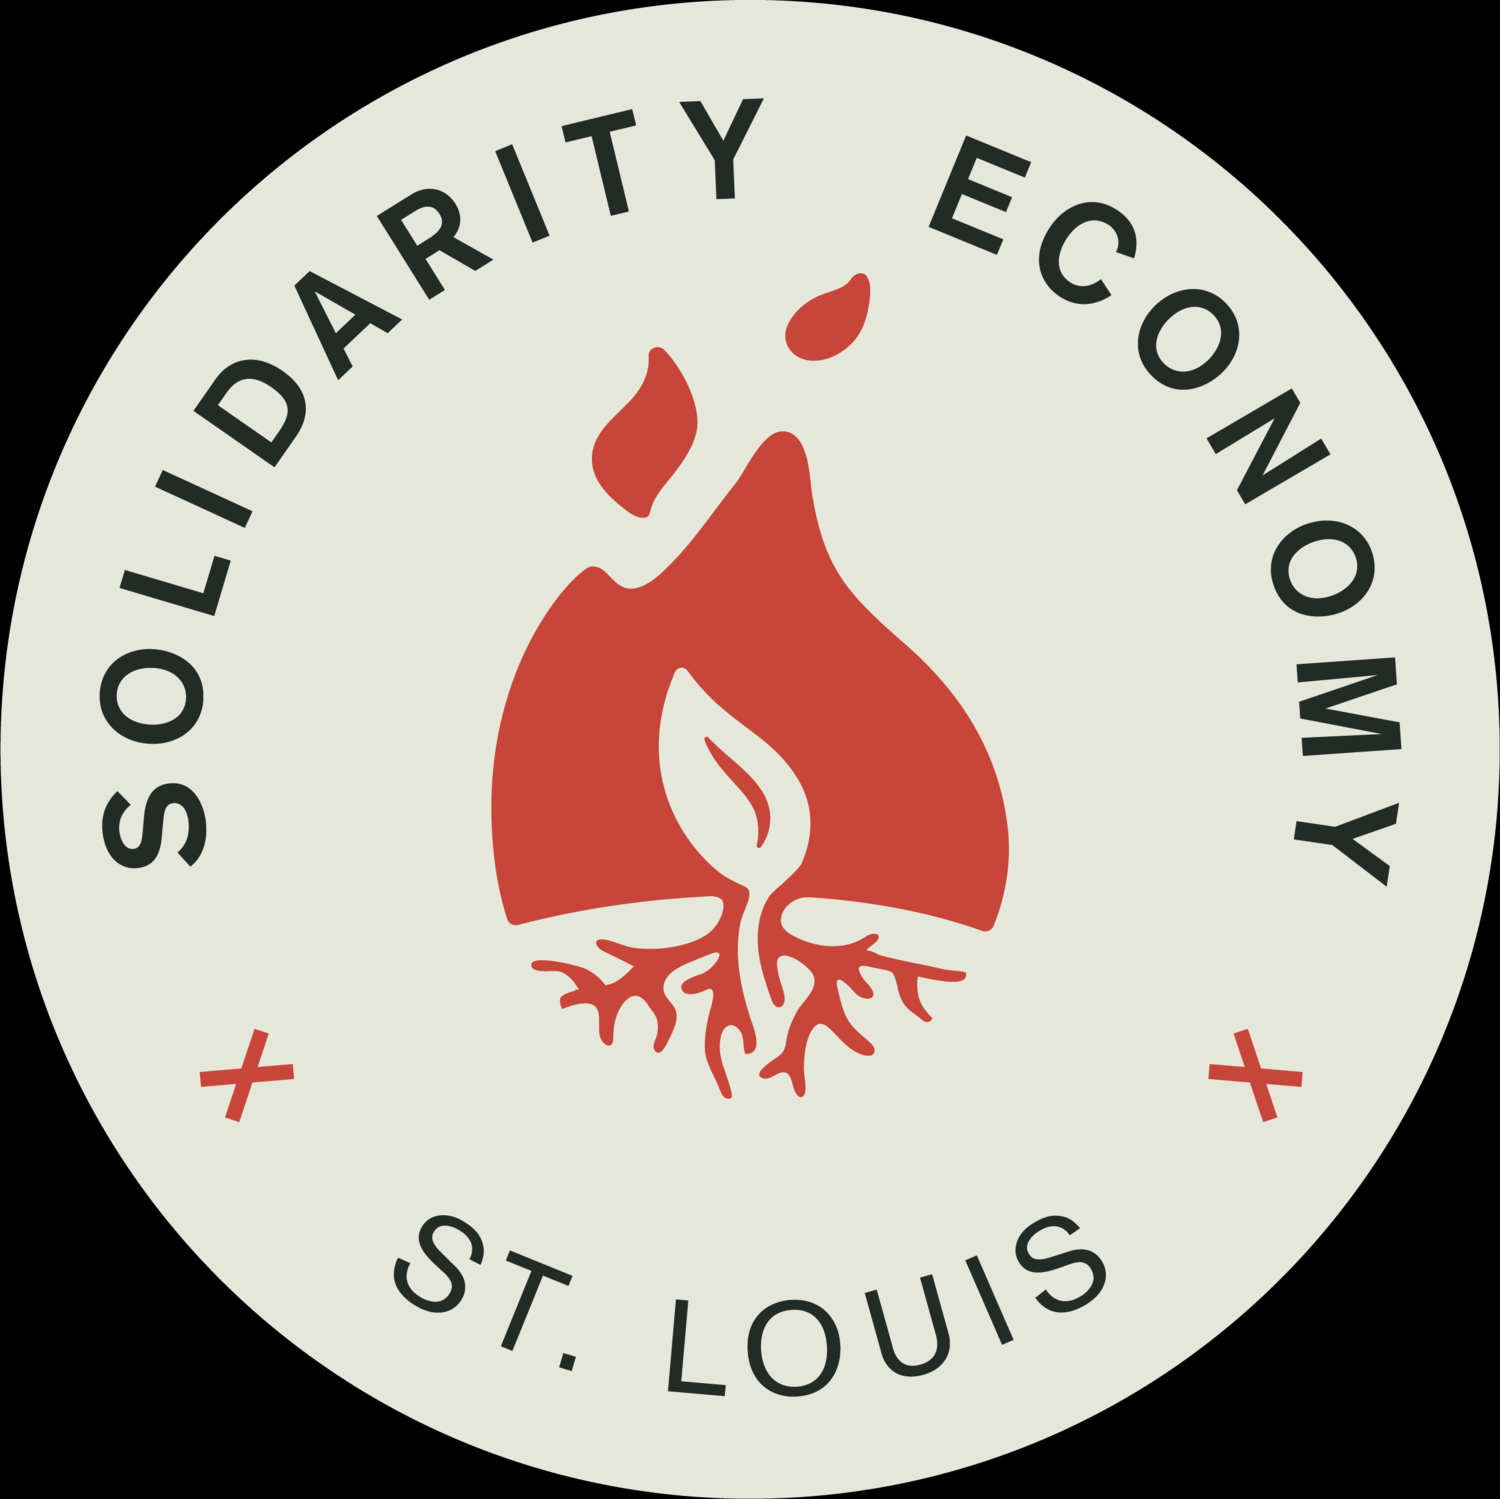 Solidarity Economy St. Louis